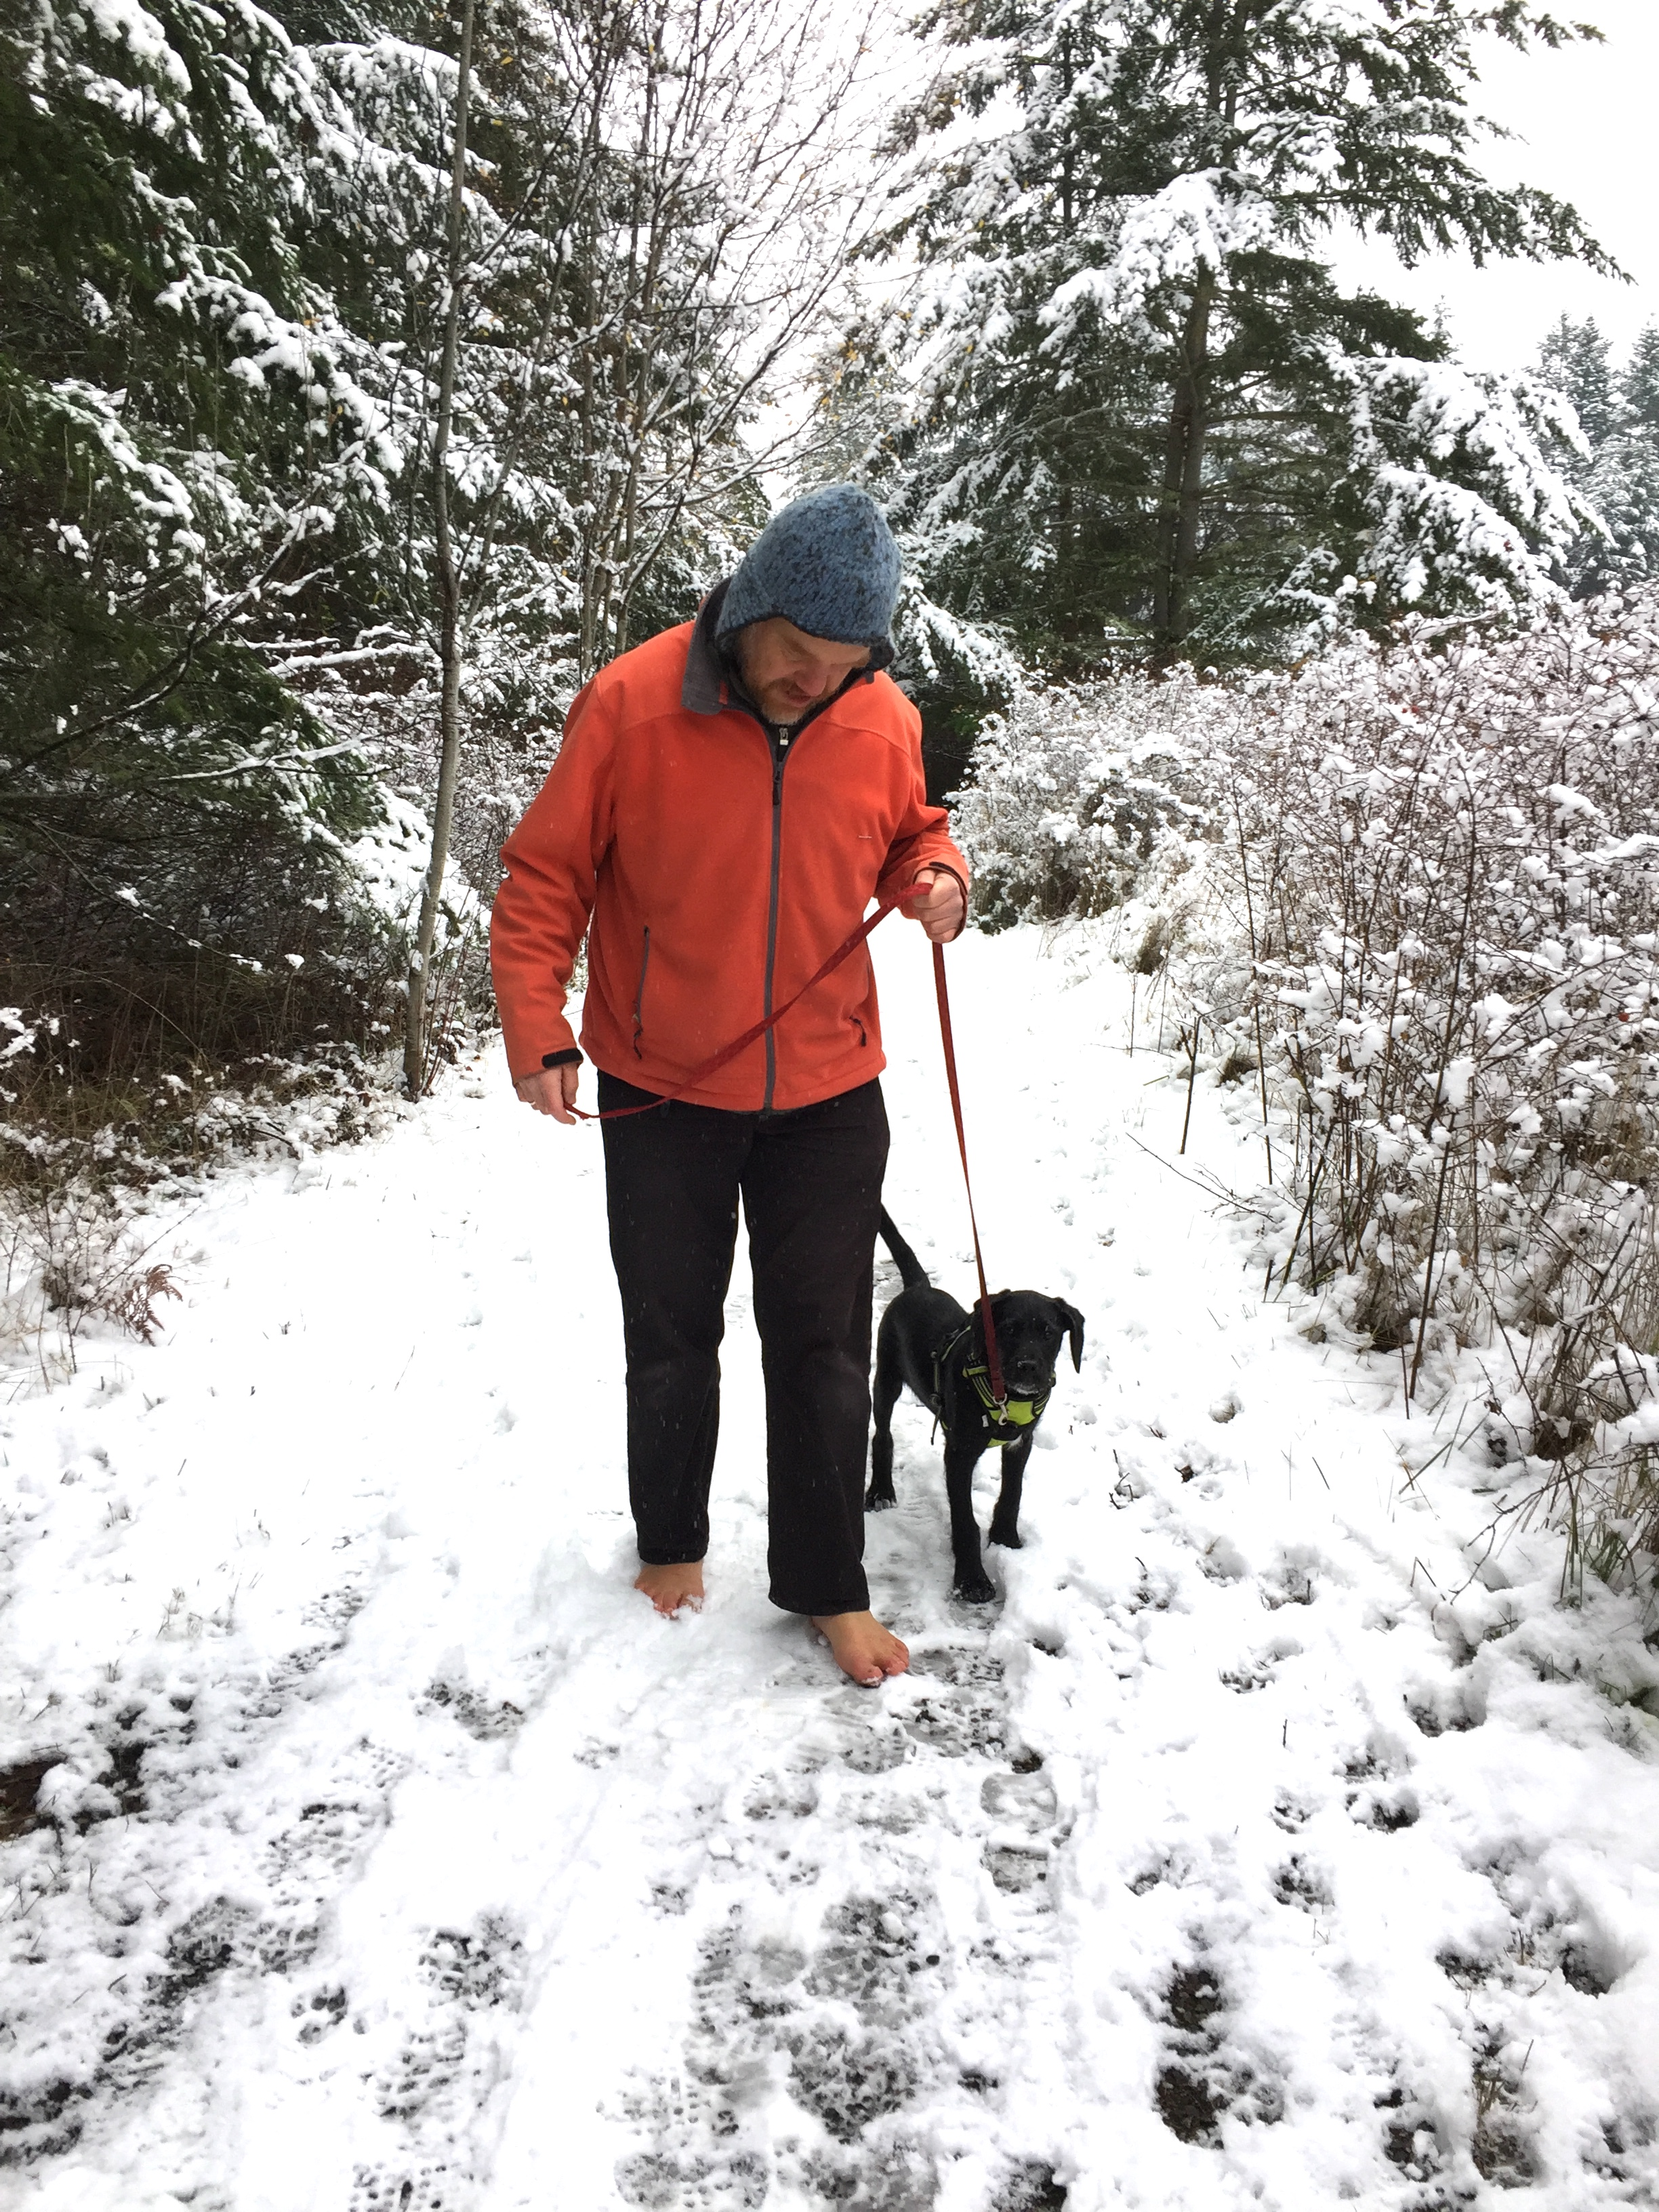 barefoot dogwalking in snow